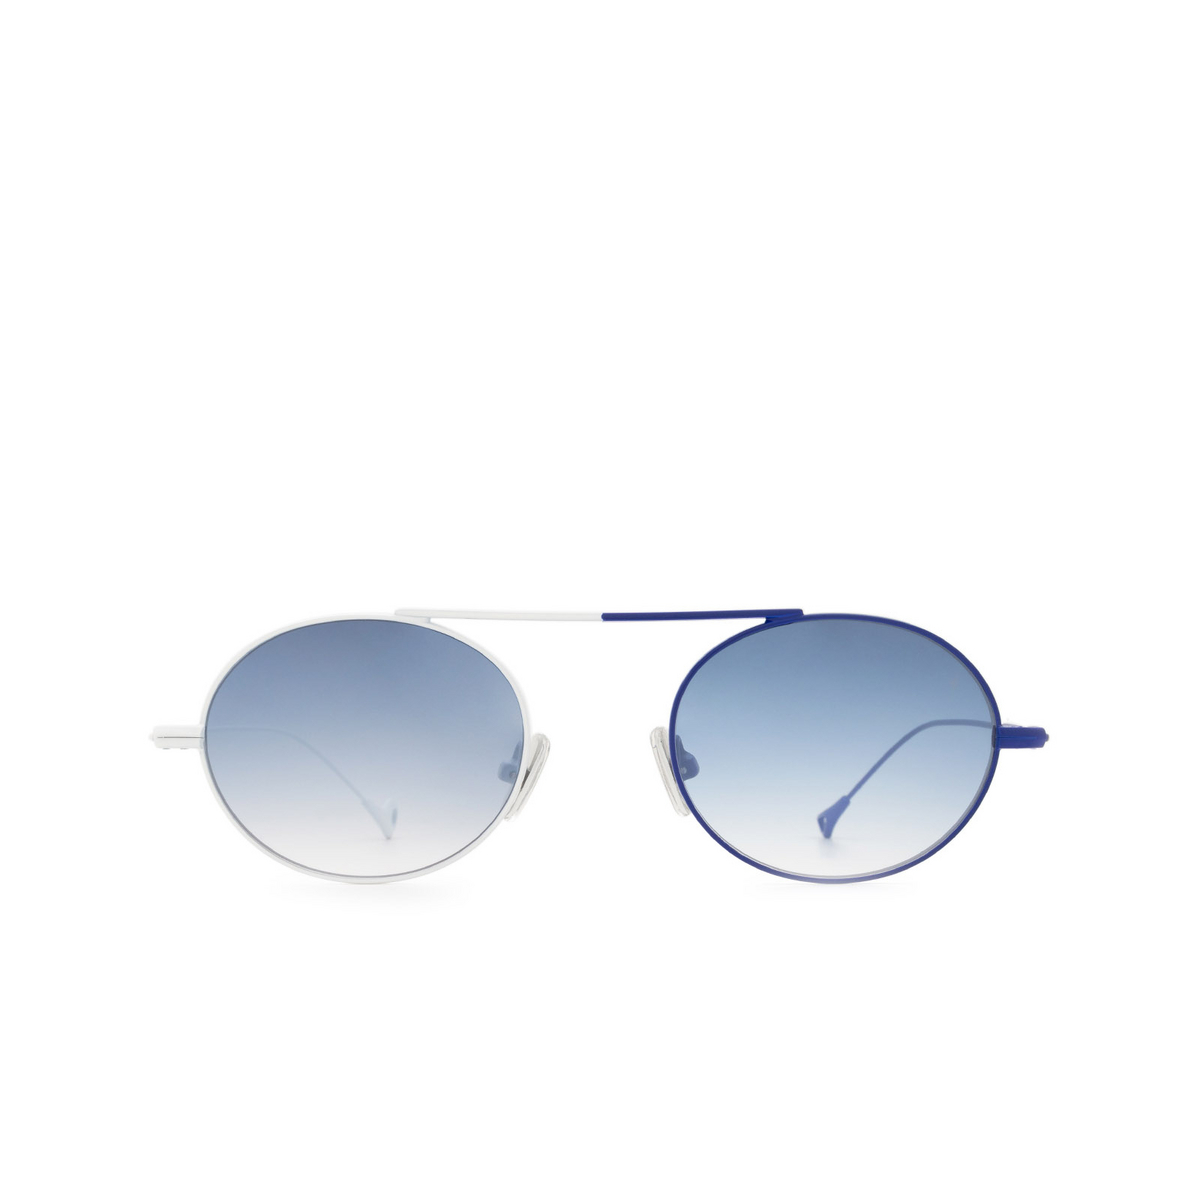 Eyepetizer® Oval Sunglasses: S.eularia color White & Blue C.19-12F - front view.